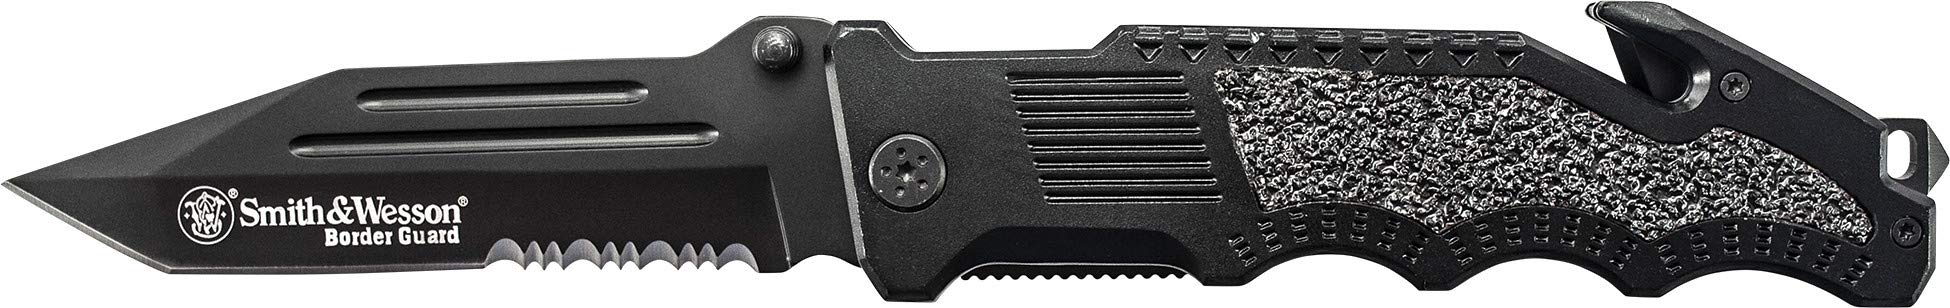 Smith & Wesson Border Guard SWBG2TS 10in High Carbon S.S. Folding Knife with 4.4in Serrated Tanto Blade and Aluminum Handle for Tactical, Survival and EDC by SMITH & WESSON